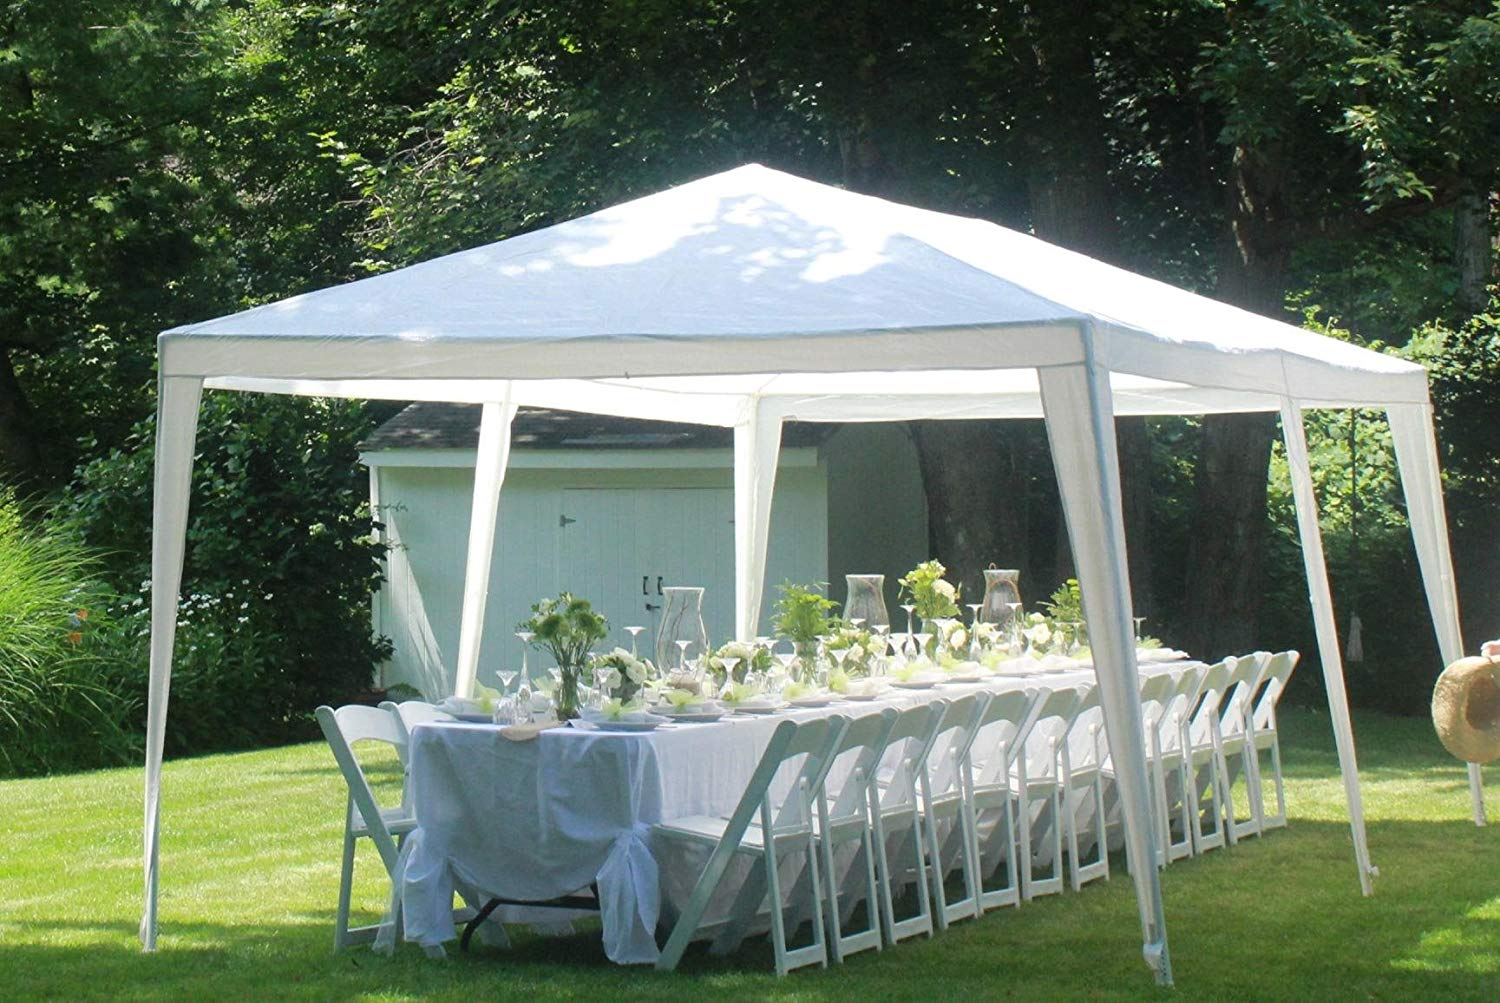 Quictent 10ft x 20ft Party Tent Gazebo Wedding Canopy BBQ Shelter Pavilion